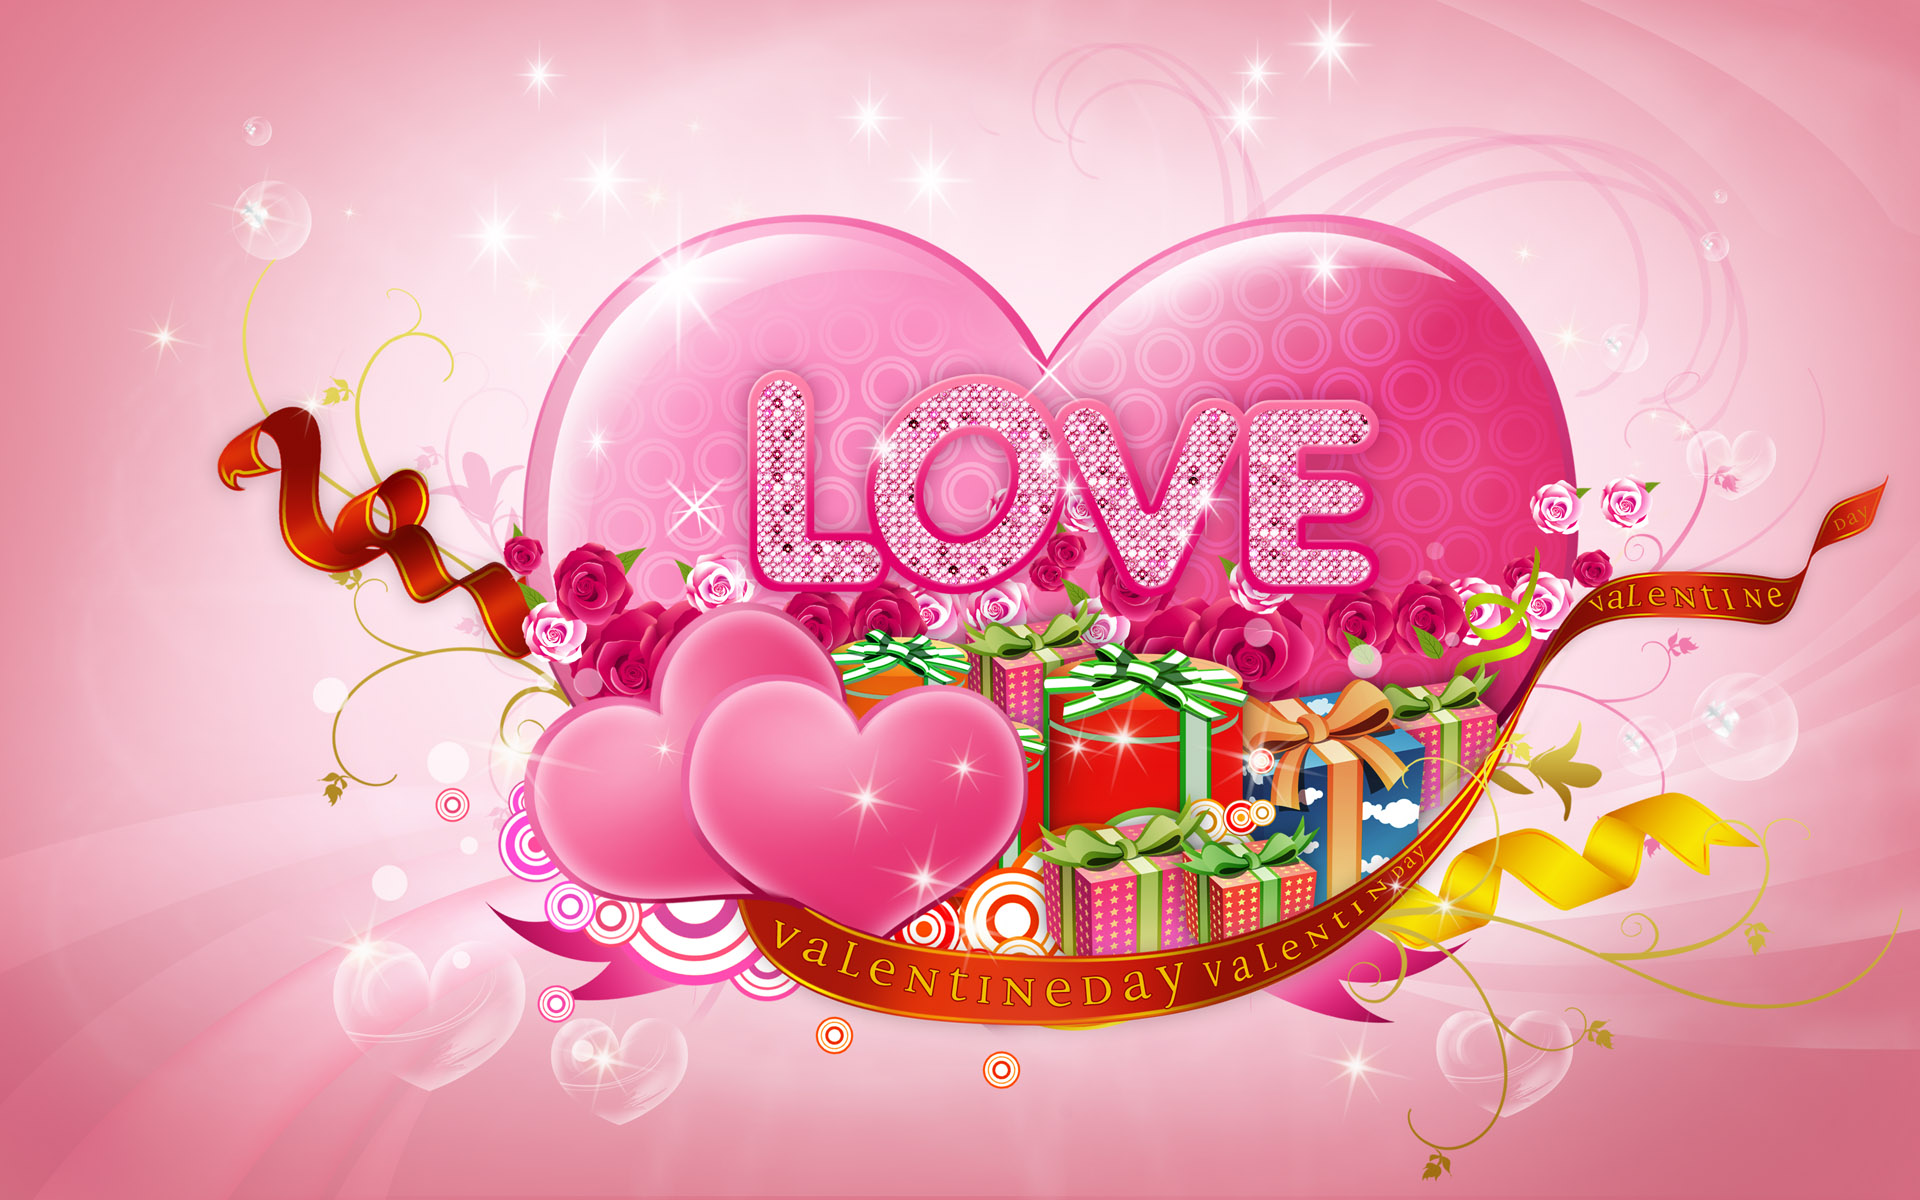 Beautiful Love Girl Wallpaper : Walentynki 1920x1200 154 - Tapety na pulpit